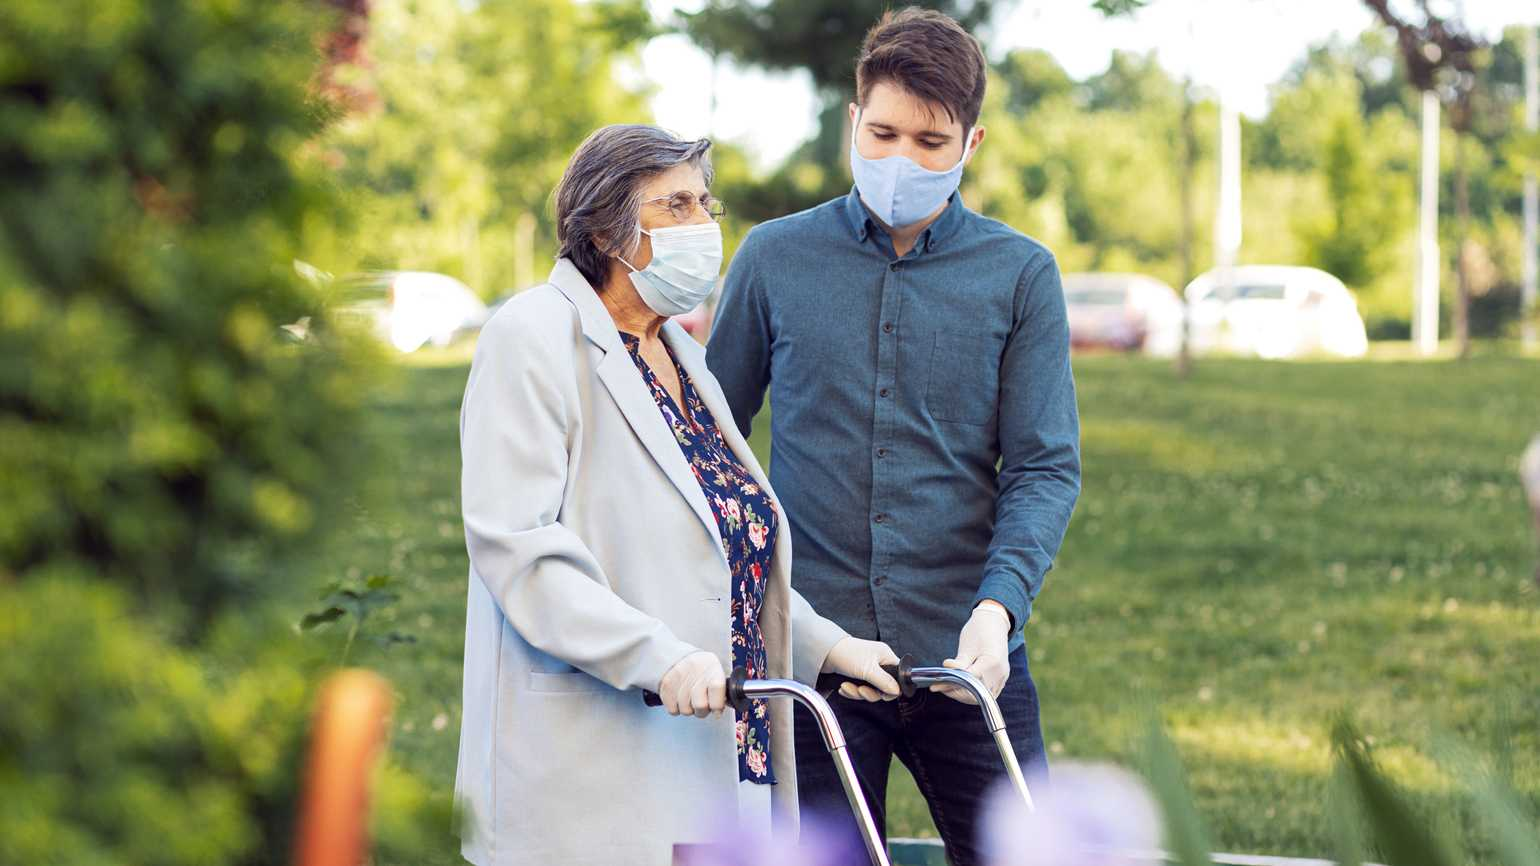 A young man helping an older woman wearing protective face masks; Getty Images